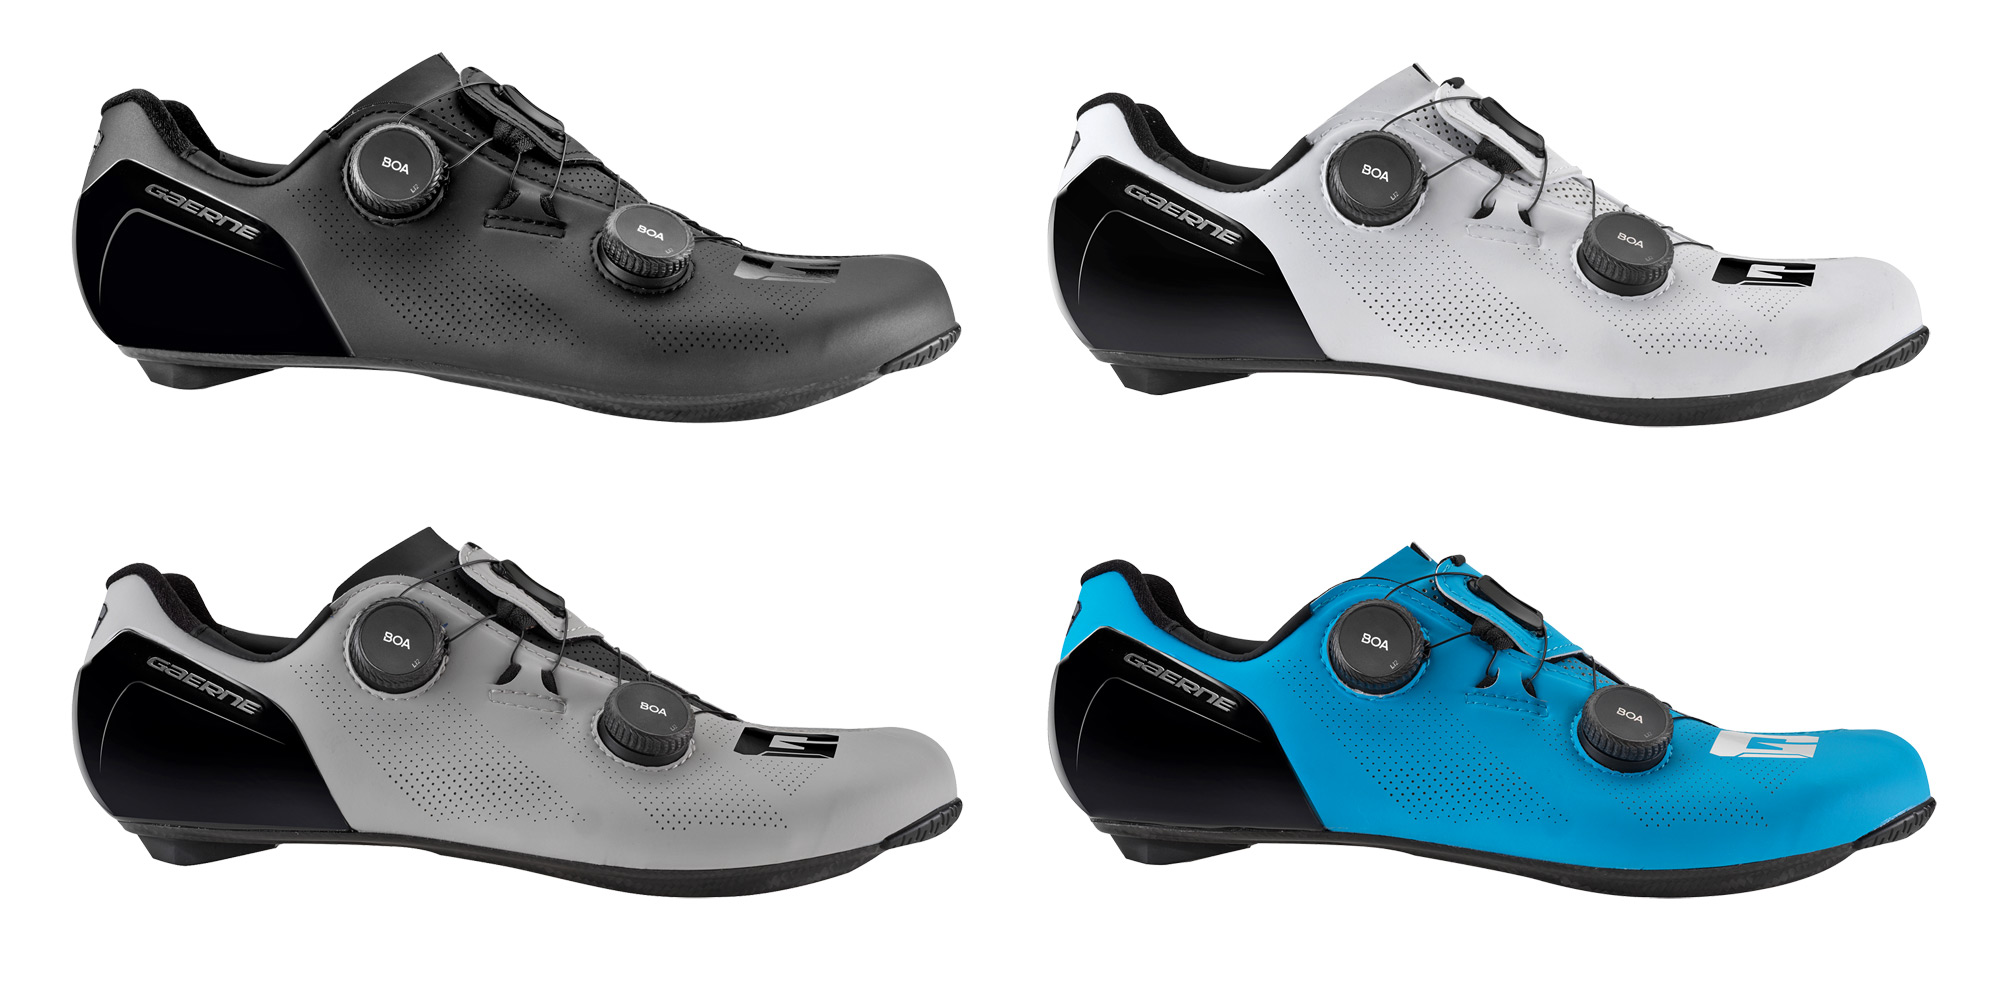 Gaerne G.STL road shoes, top-tier made-in-Italy performance carbon road race bike shoe,standard colors